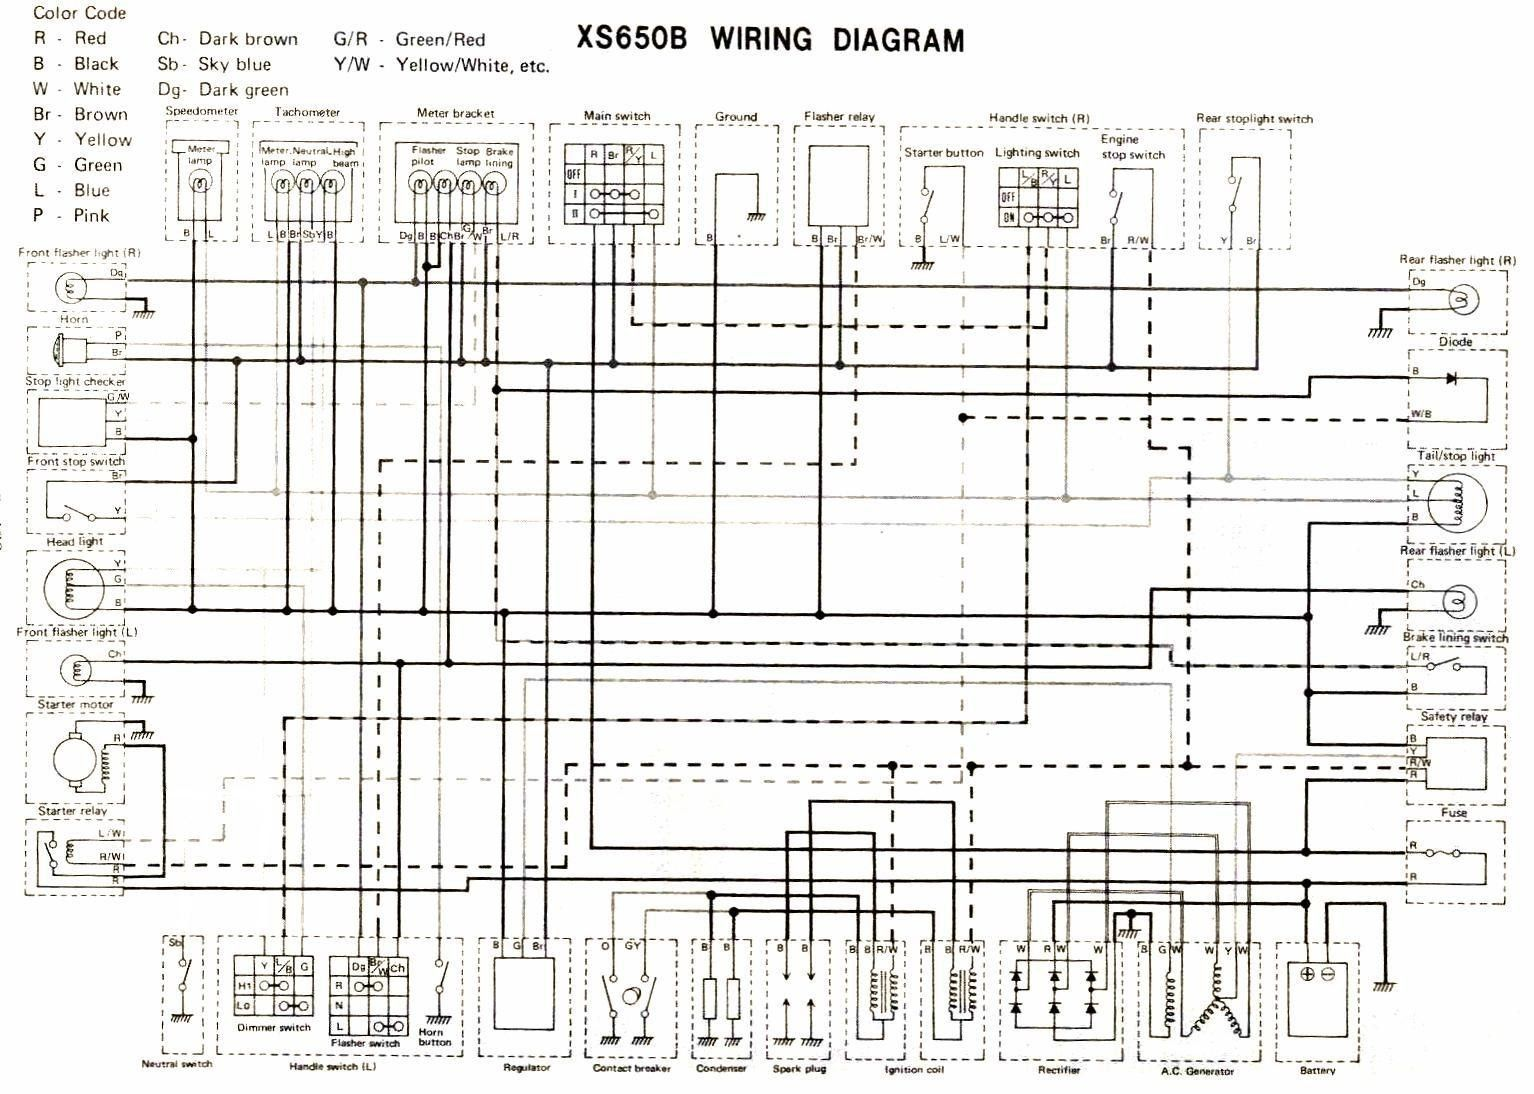 2003 Yamaha Road Star Wiring Diagram Oeohullieder • | 2003 Yamaha Road Star Wiring Diagram |  | Pinterest